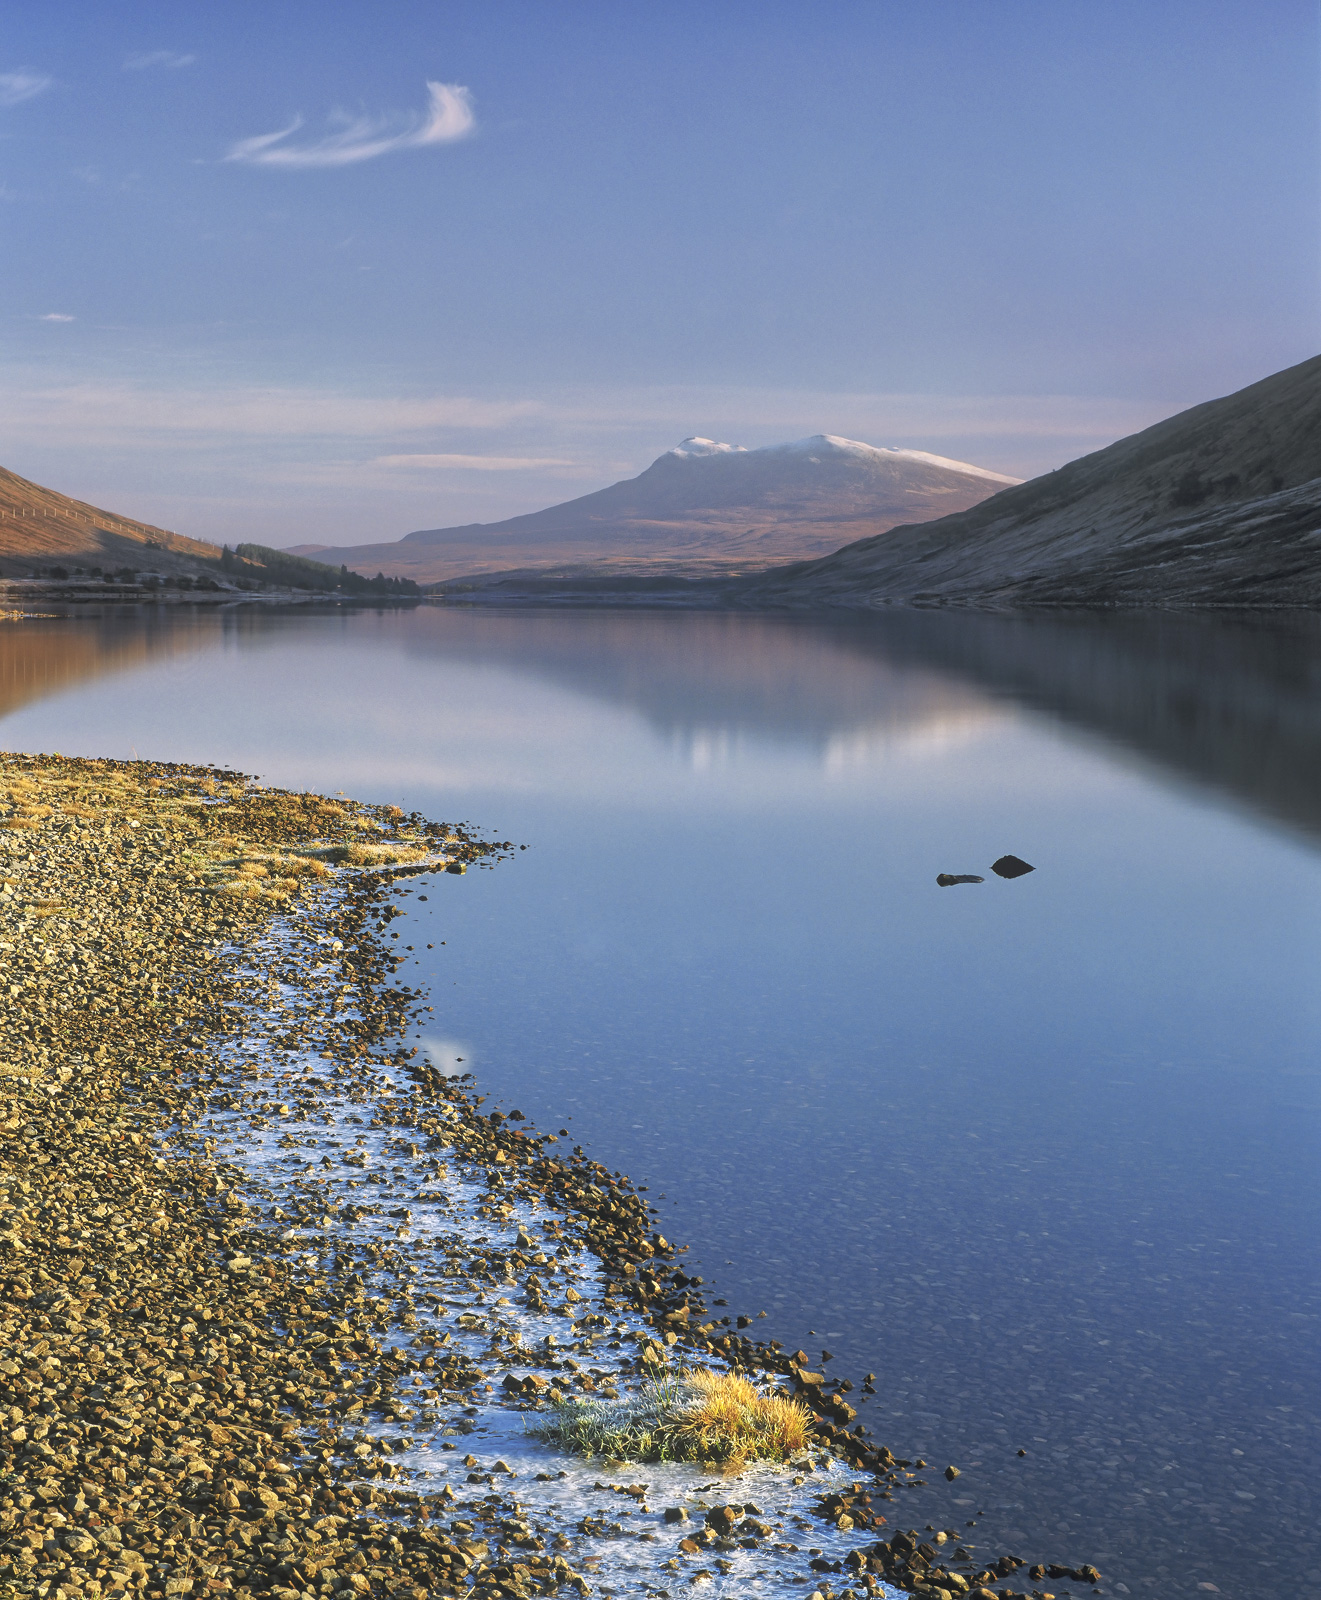 A gorgeous serene and breathlessly still winter morning at the edge of Loch a Chroisg. The weak light of a lemon yellow...